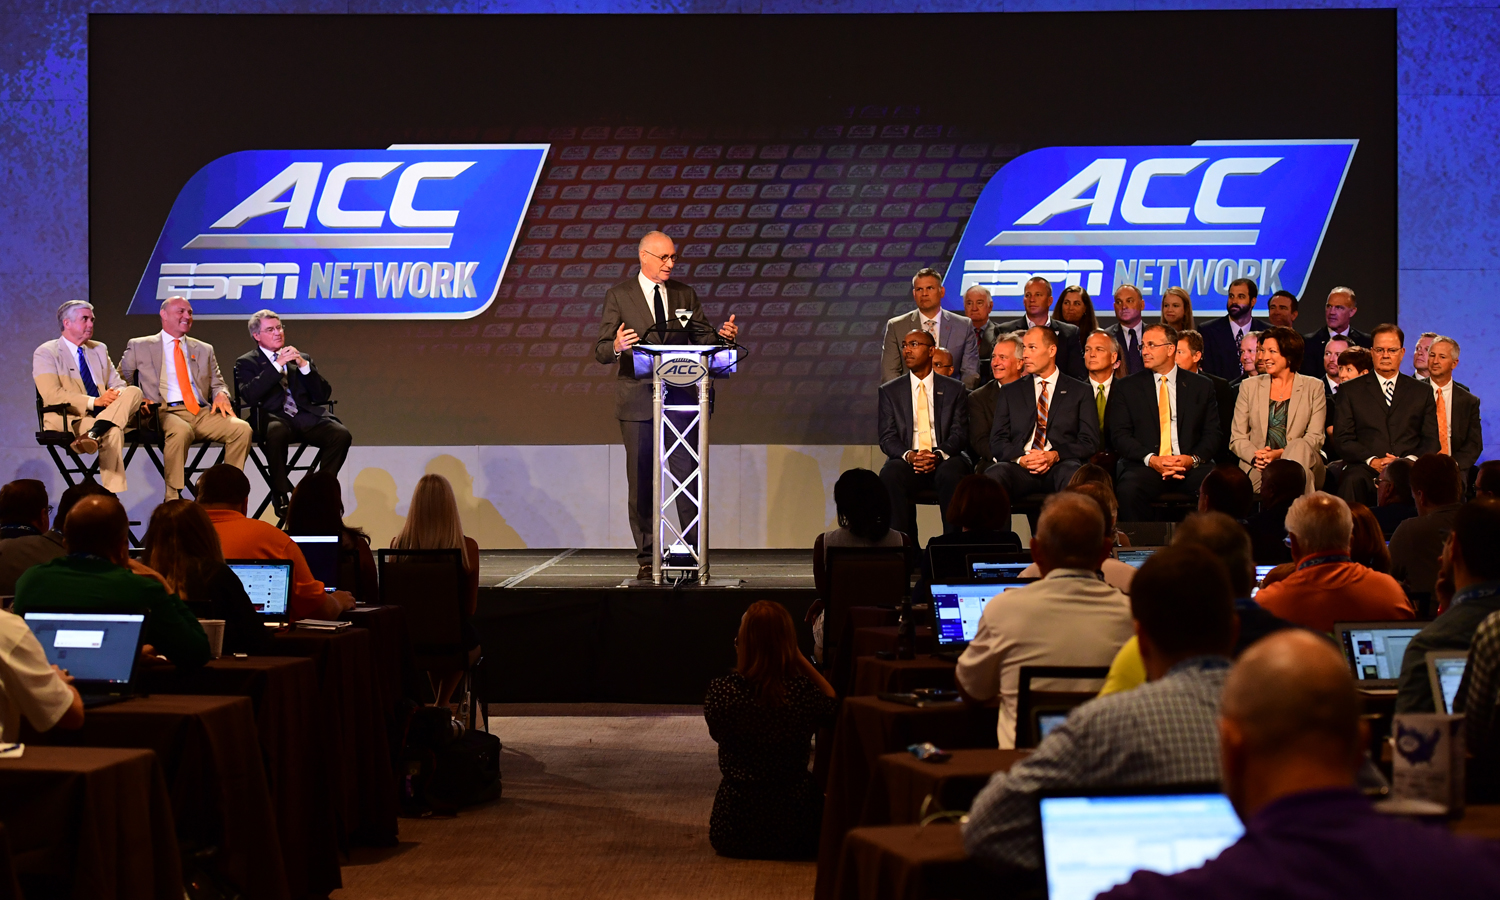 ACC Network set to launch in 2019